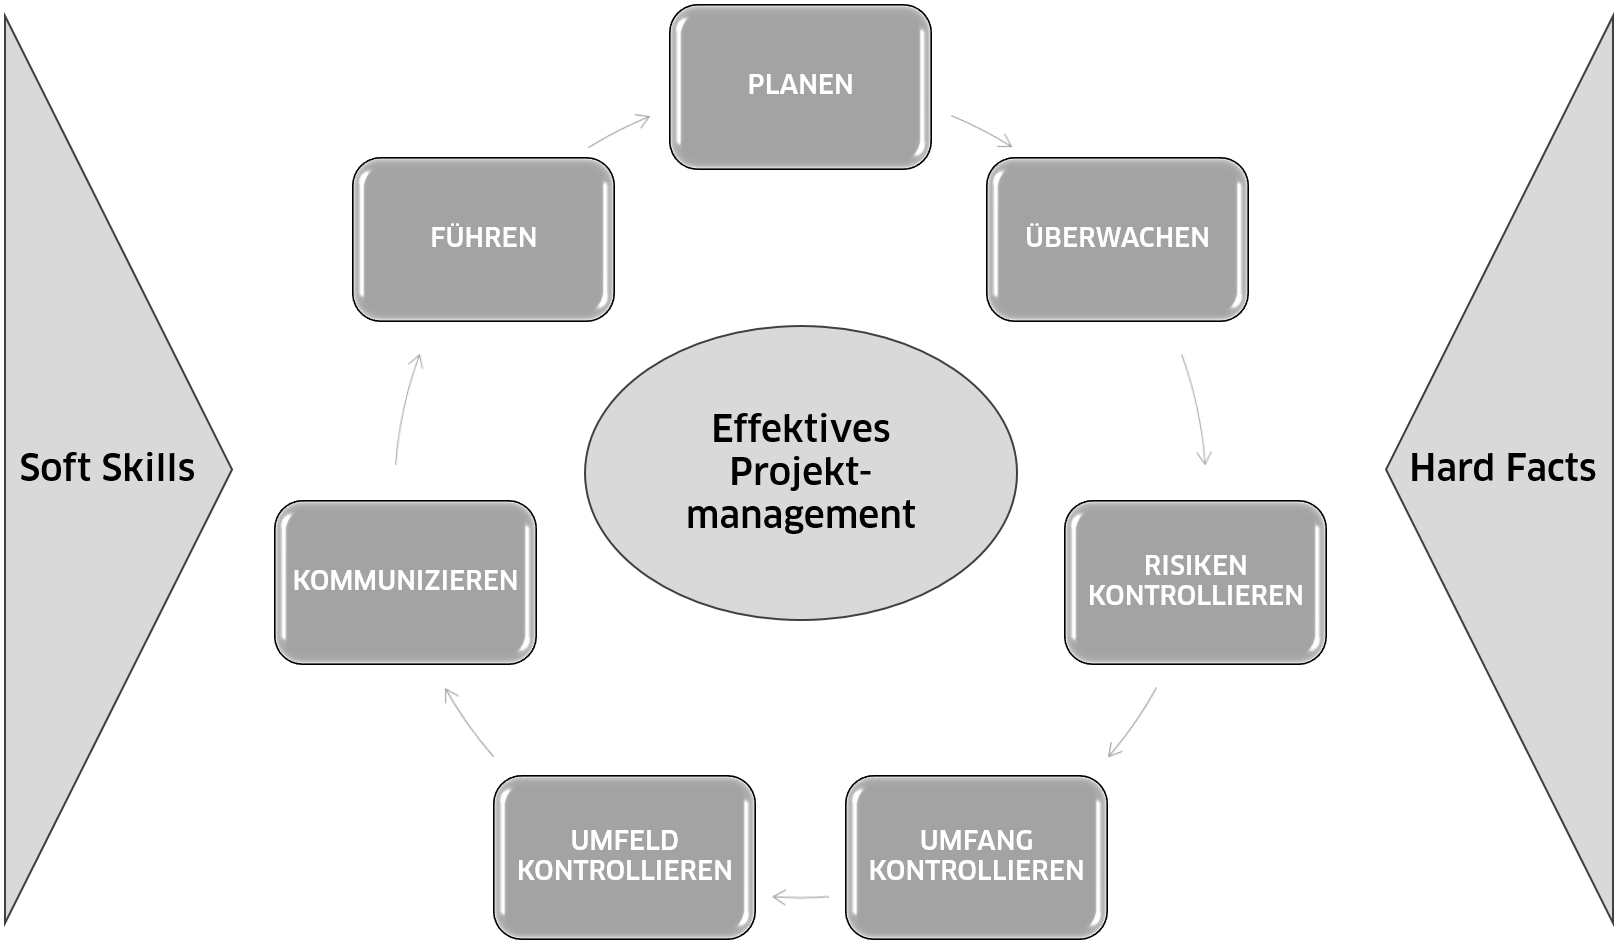 Effektives Projektmanagement